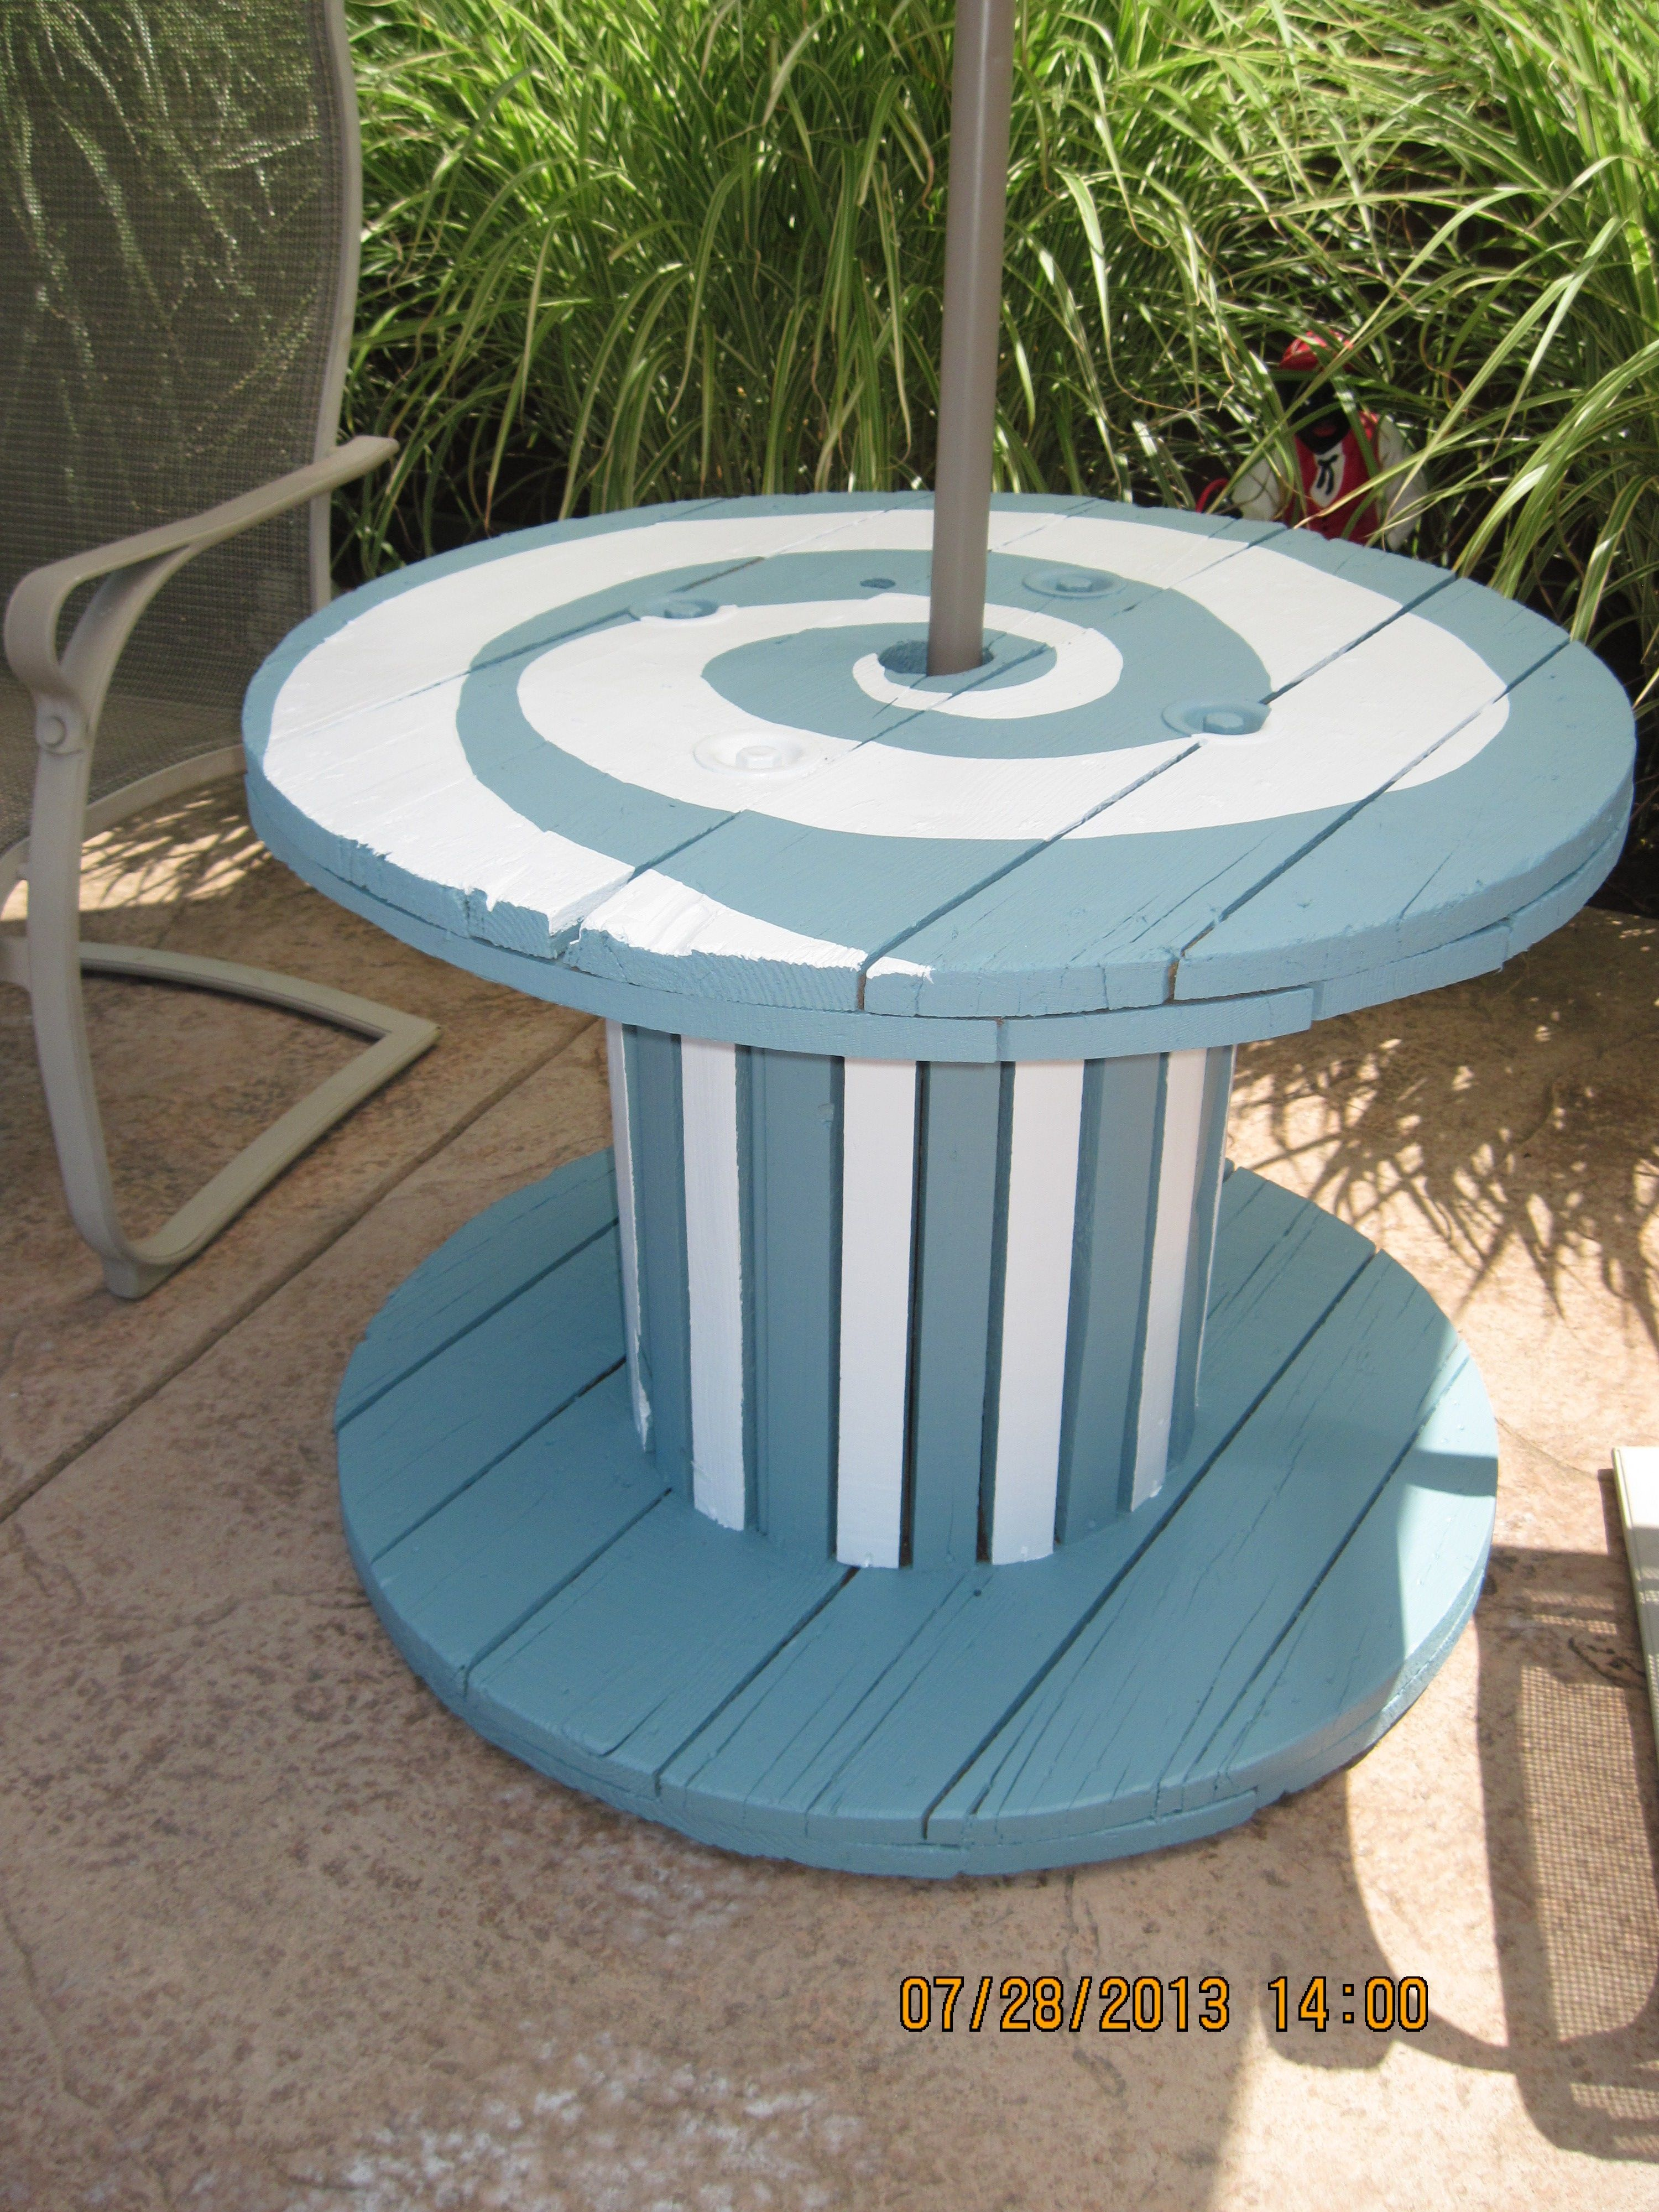 Painted Wooden Spool, Chairs From A Garage Sail, Umbrella And Bam Cute For  Backyard Chill Time.